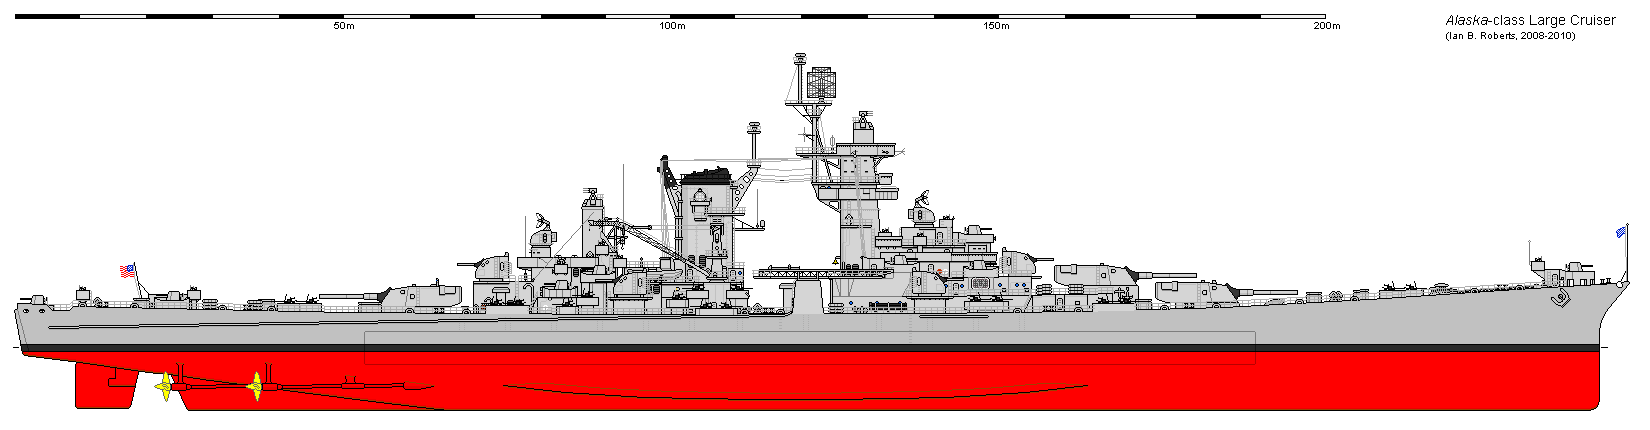 aircraft carrier schematics with File Cb Alaska Class Baseline on Cv 002 Catapult together with Poseidon Class 152104491 likewise USS Texas 1942 458777778 together with Saabsaratoga besides Virgin Galactic Resumes Spaceshiptwo Testing.